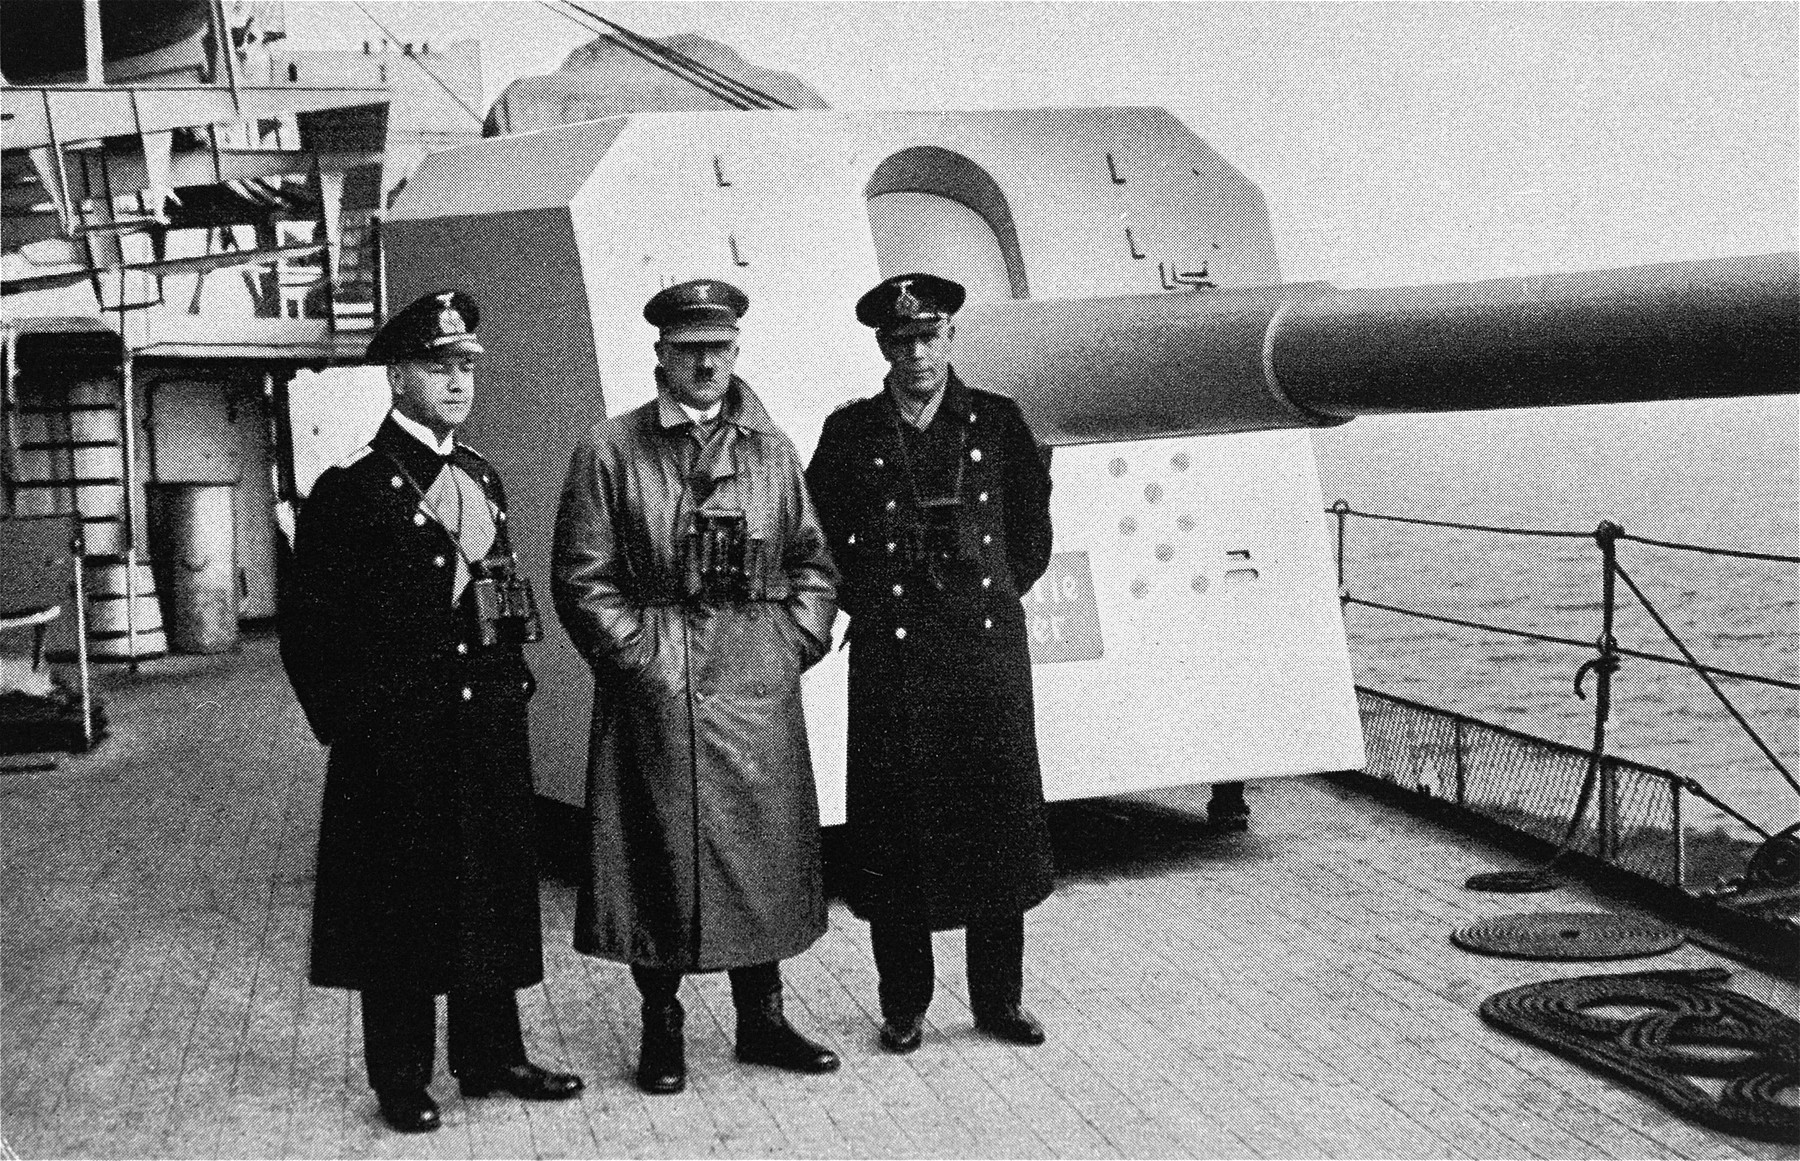 Hitler inspects a German naval warship [perhaps the Deutschland].   To his left is Admiral Erich Raeder.  On the right is most probably,  Captain Hermann v. Fischel, commander of the Deutschland from 01 Apr 1933 to 29 Dec 1935.